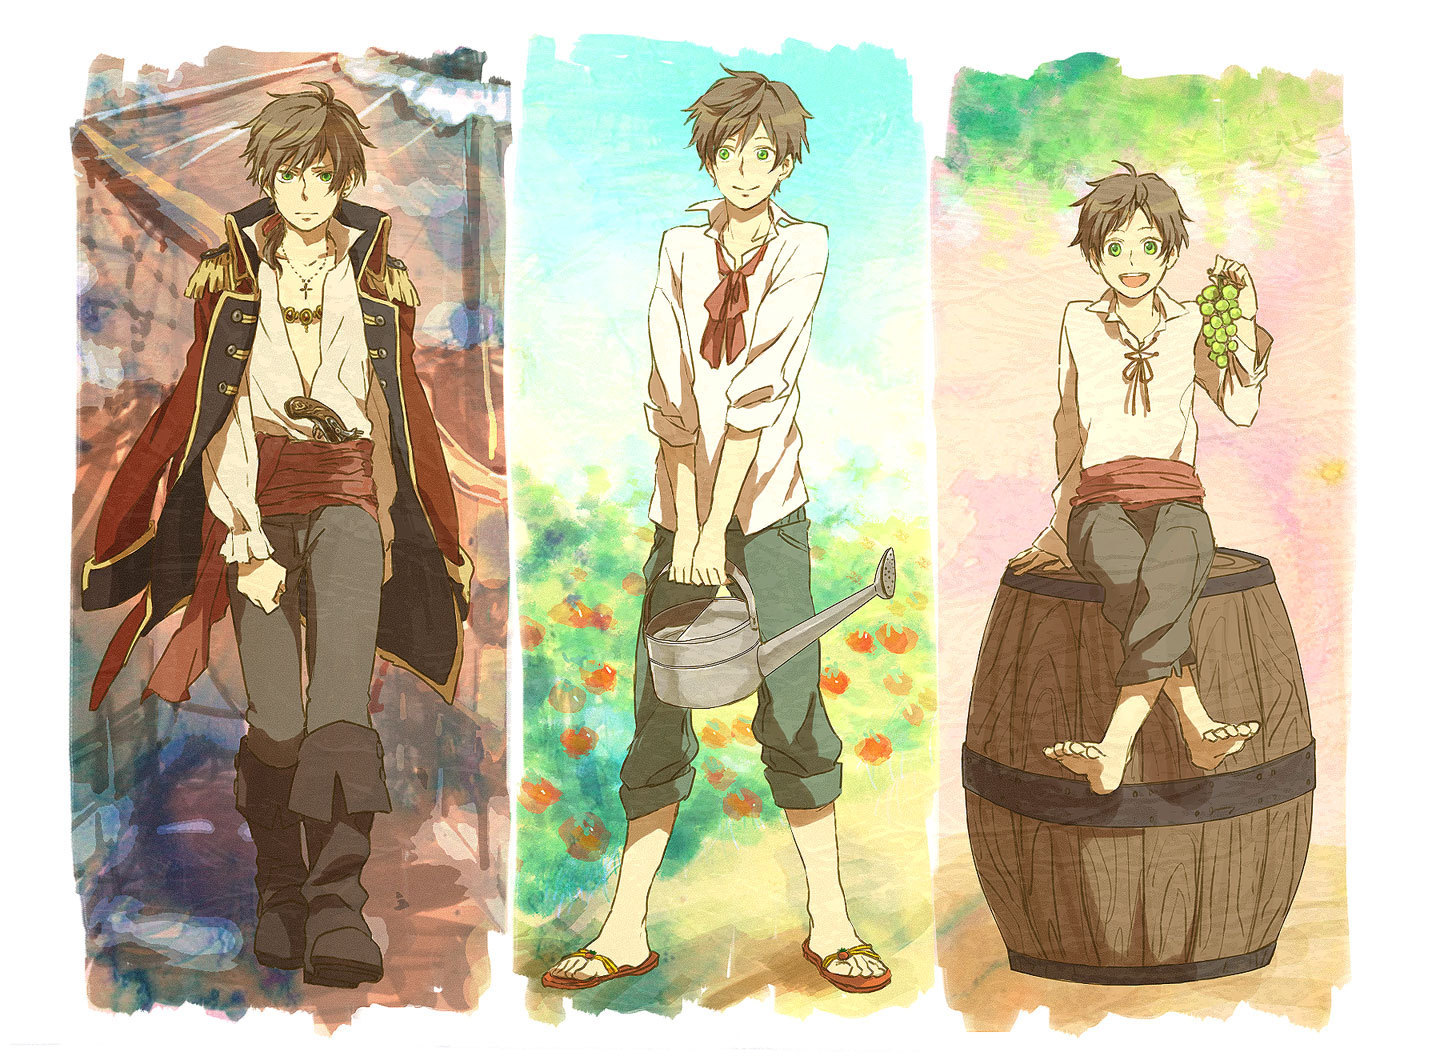 http://images5.fanpop.com/image/photos/28600000/Spain-hetalia-spain-28656544-1440-1064.jpg?1349146196239